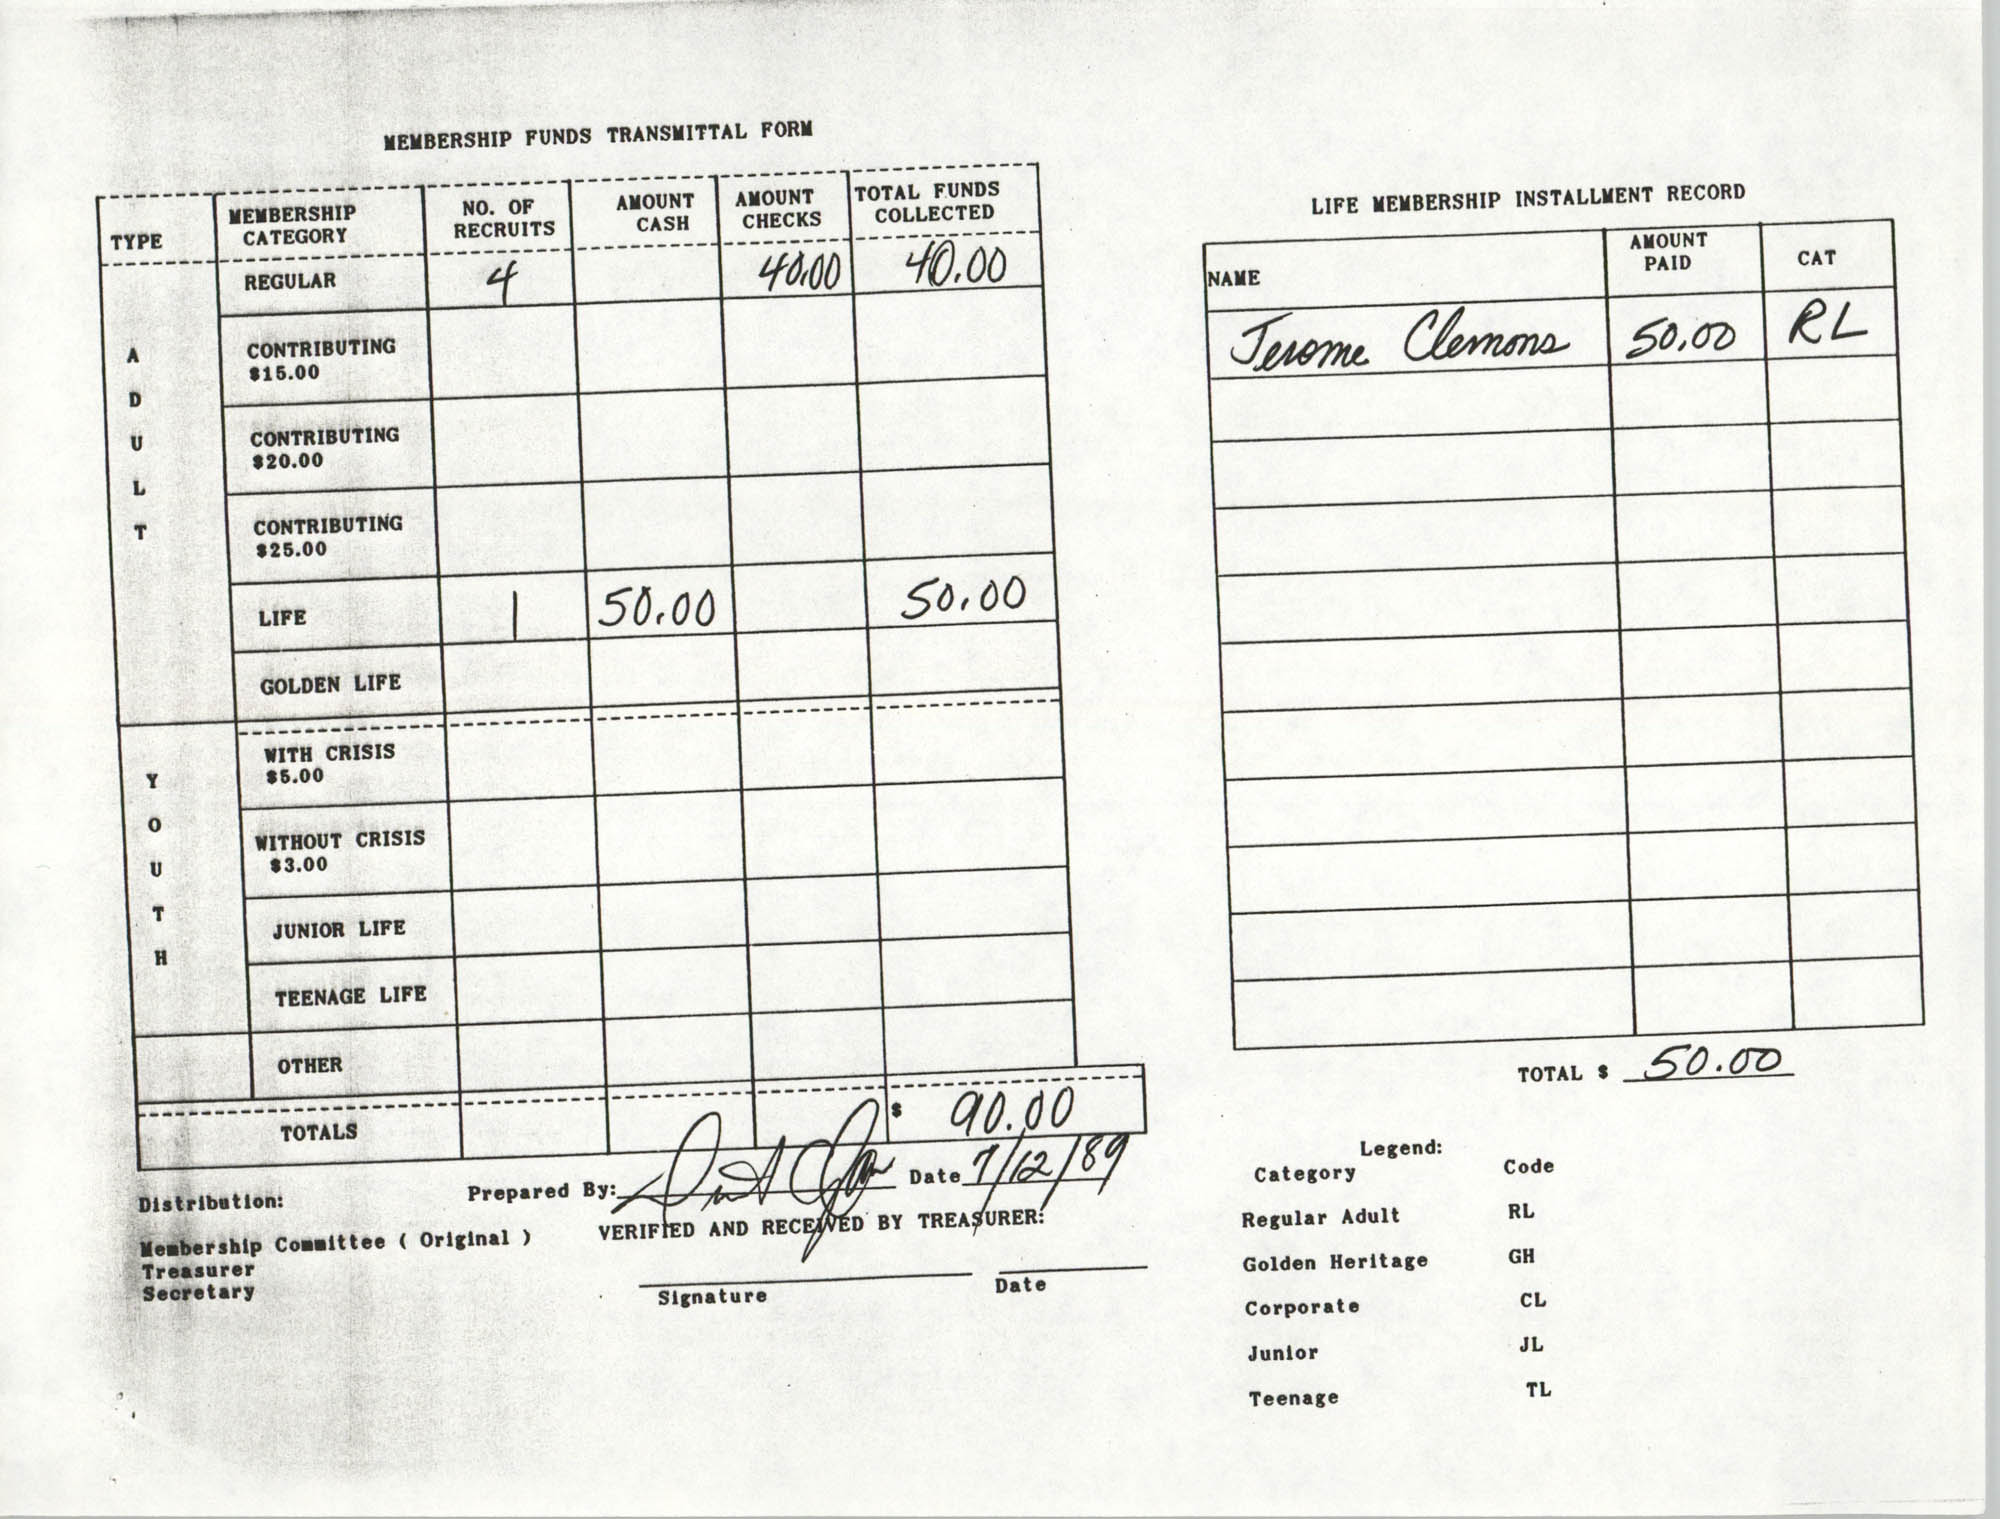 Charleston Branch of the NAACP Funds Transmittal Forms, July 1989, Page 2